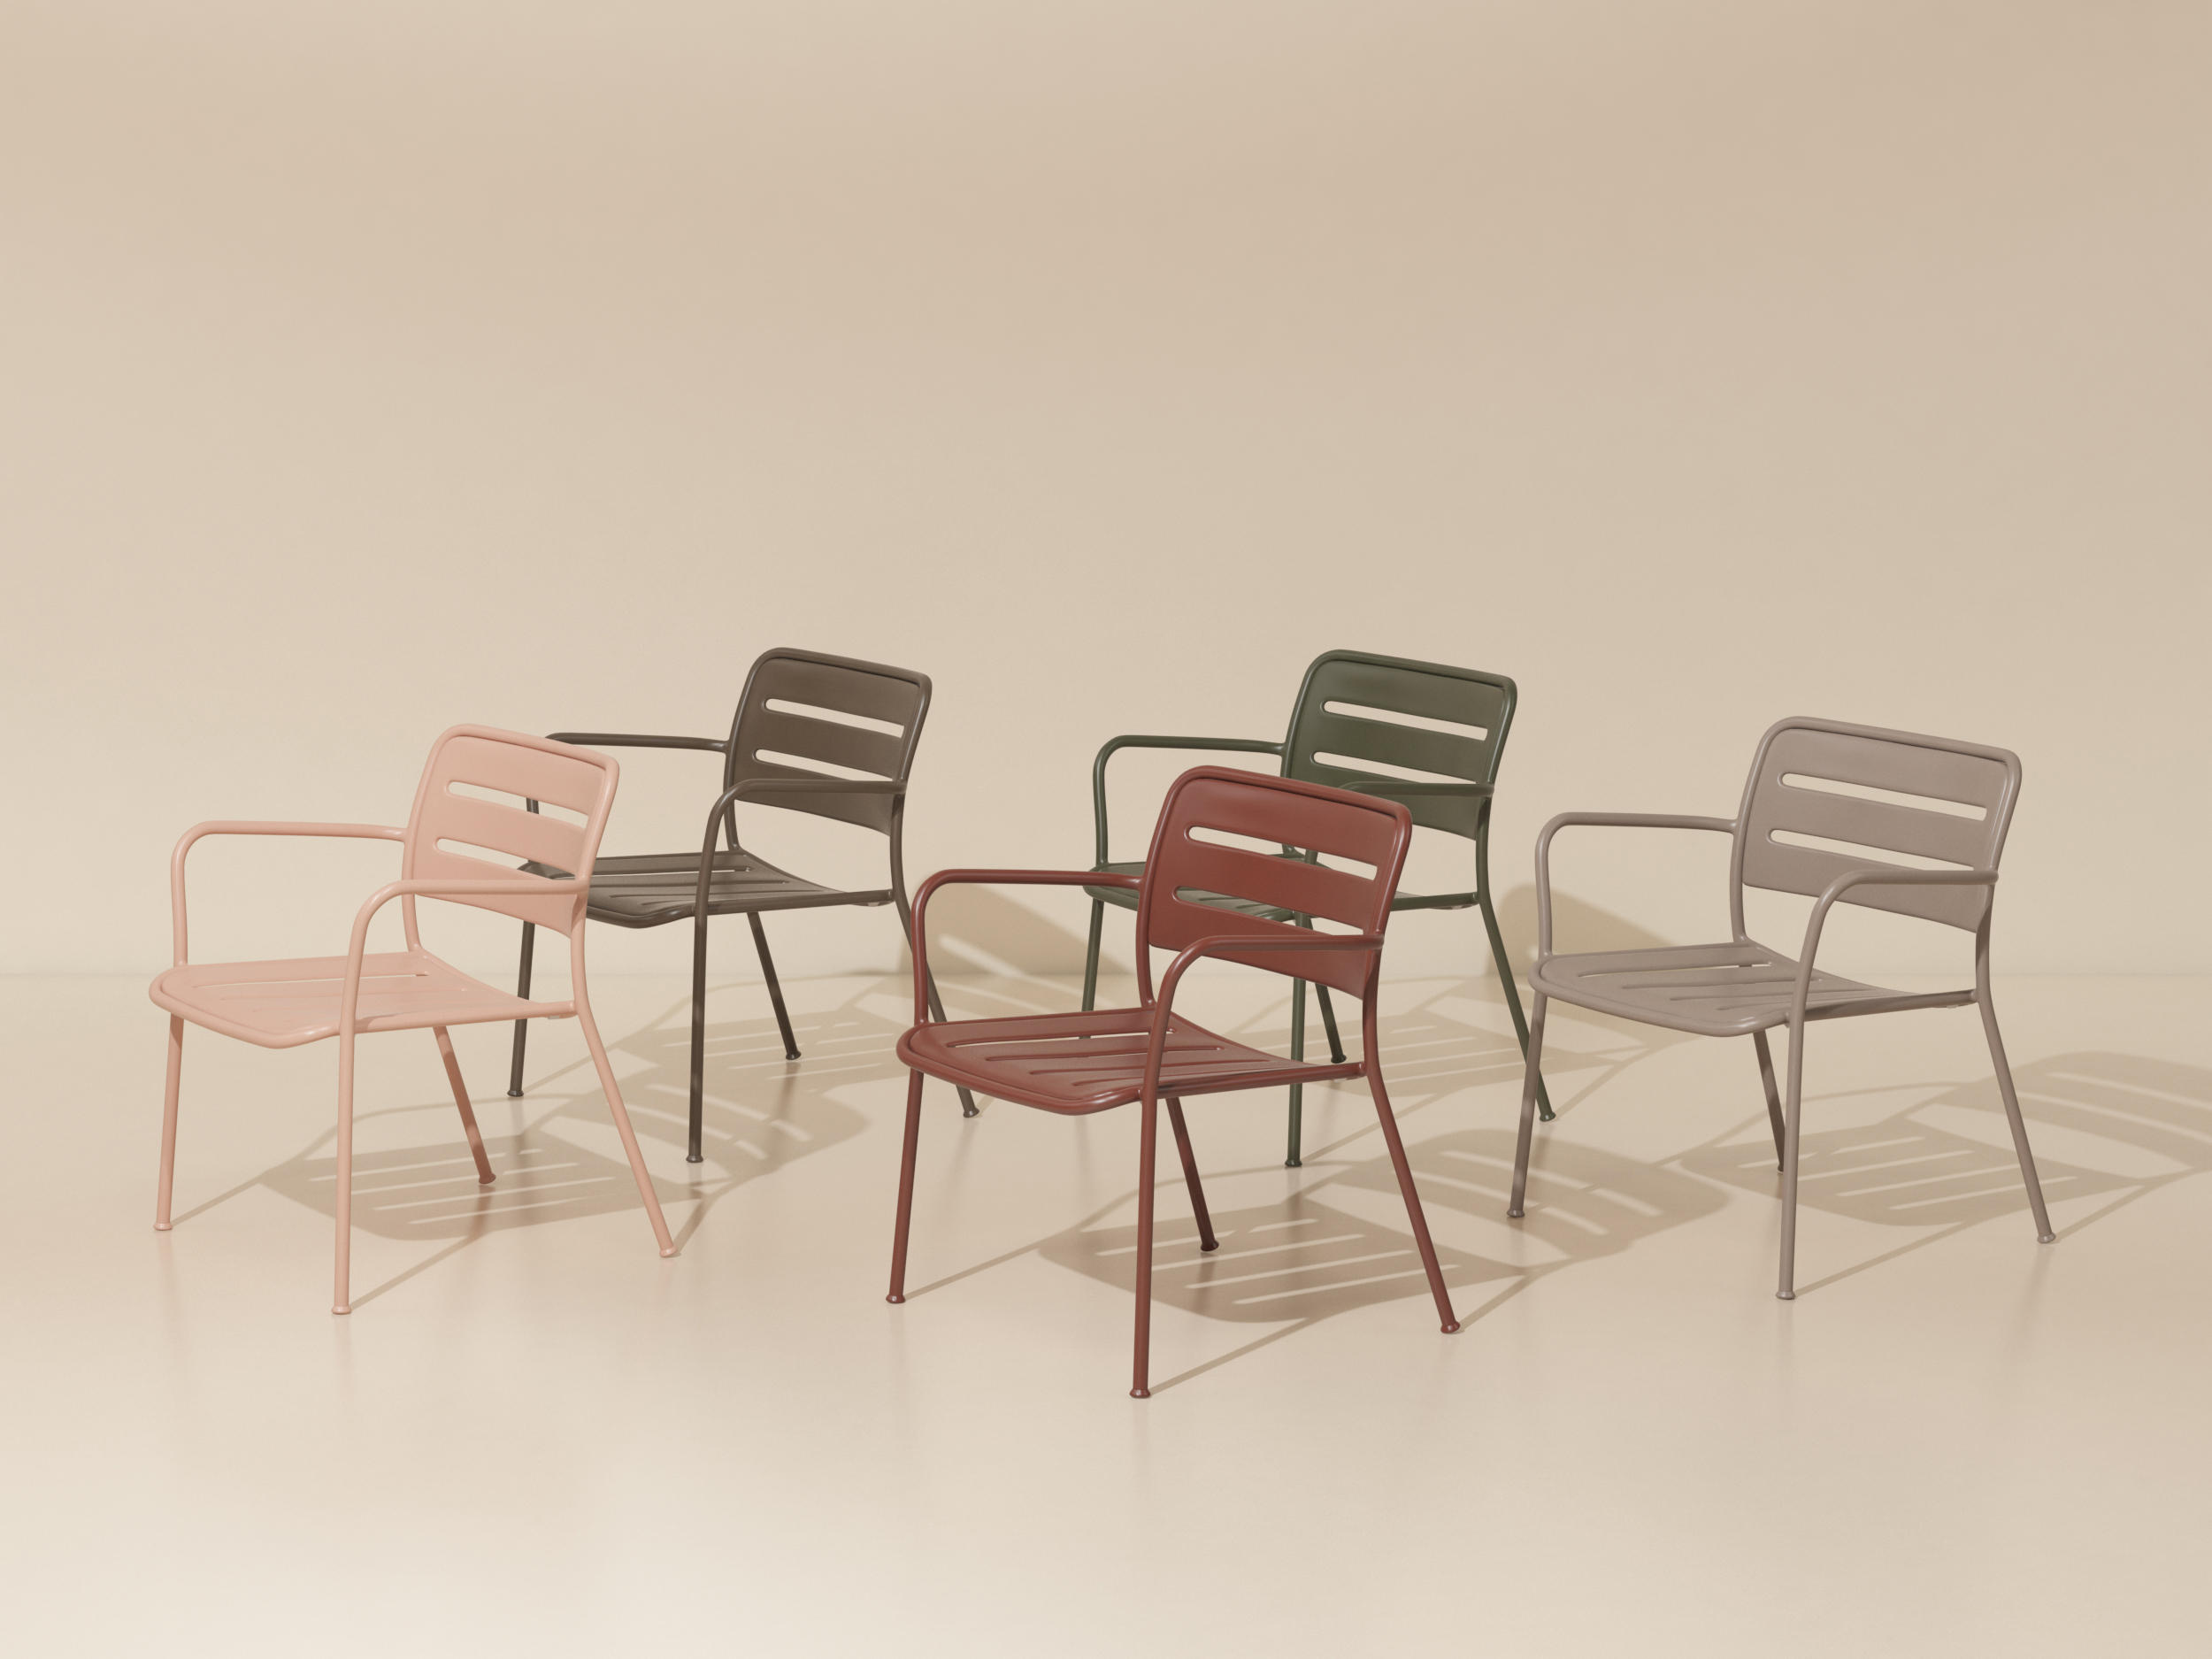 Village Dining Armchair By KETTAL | Chairs